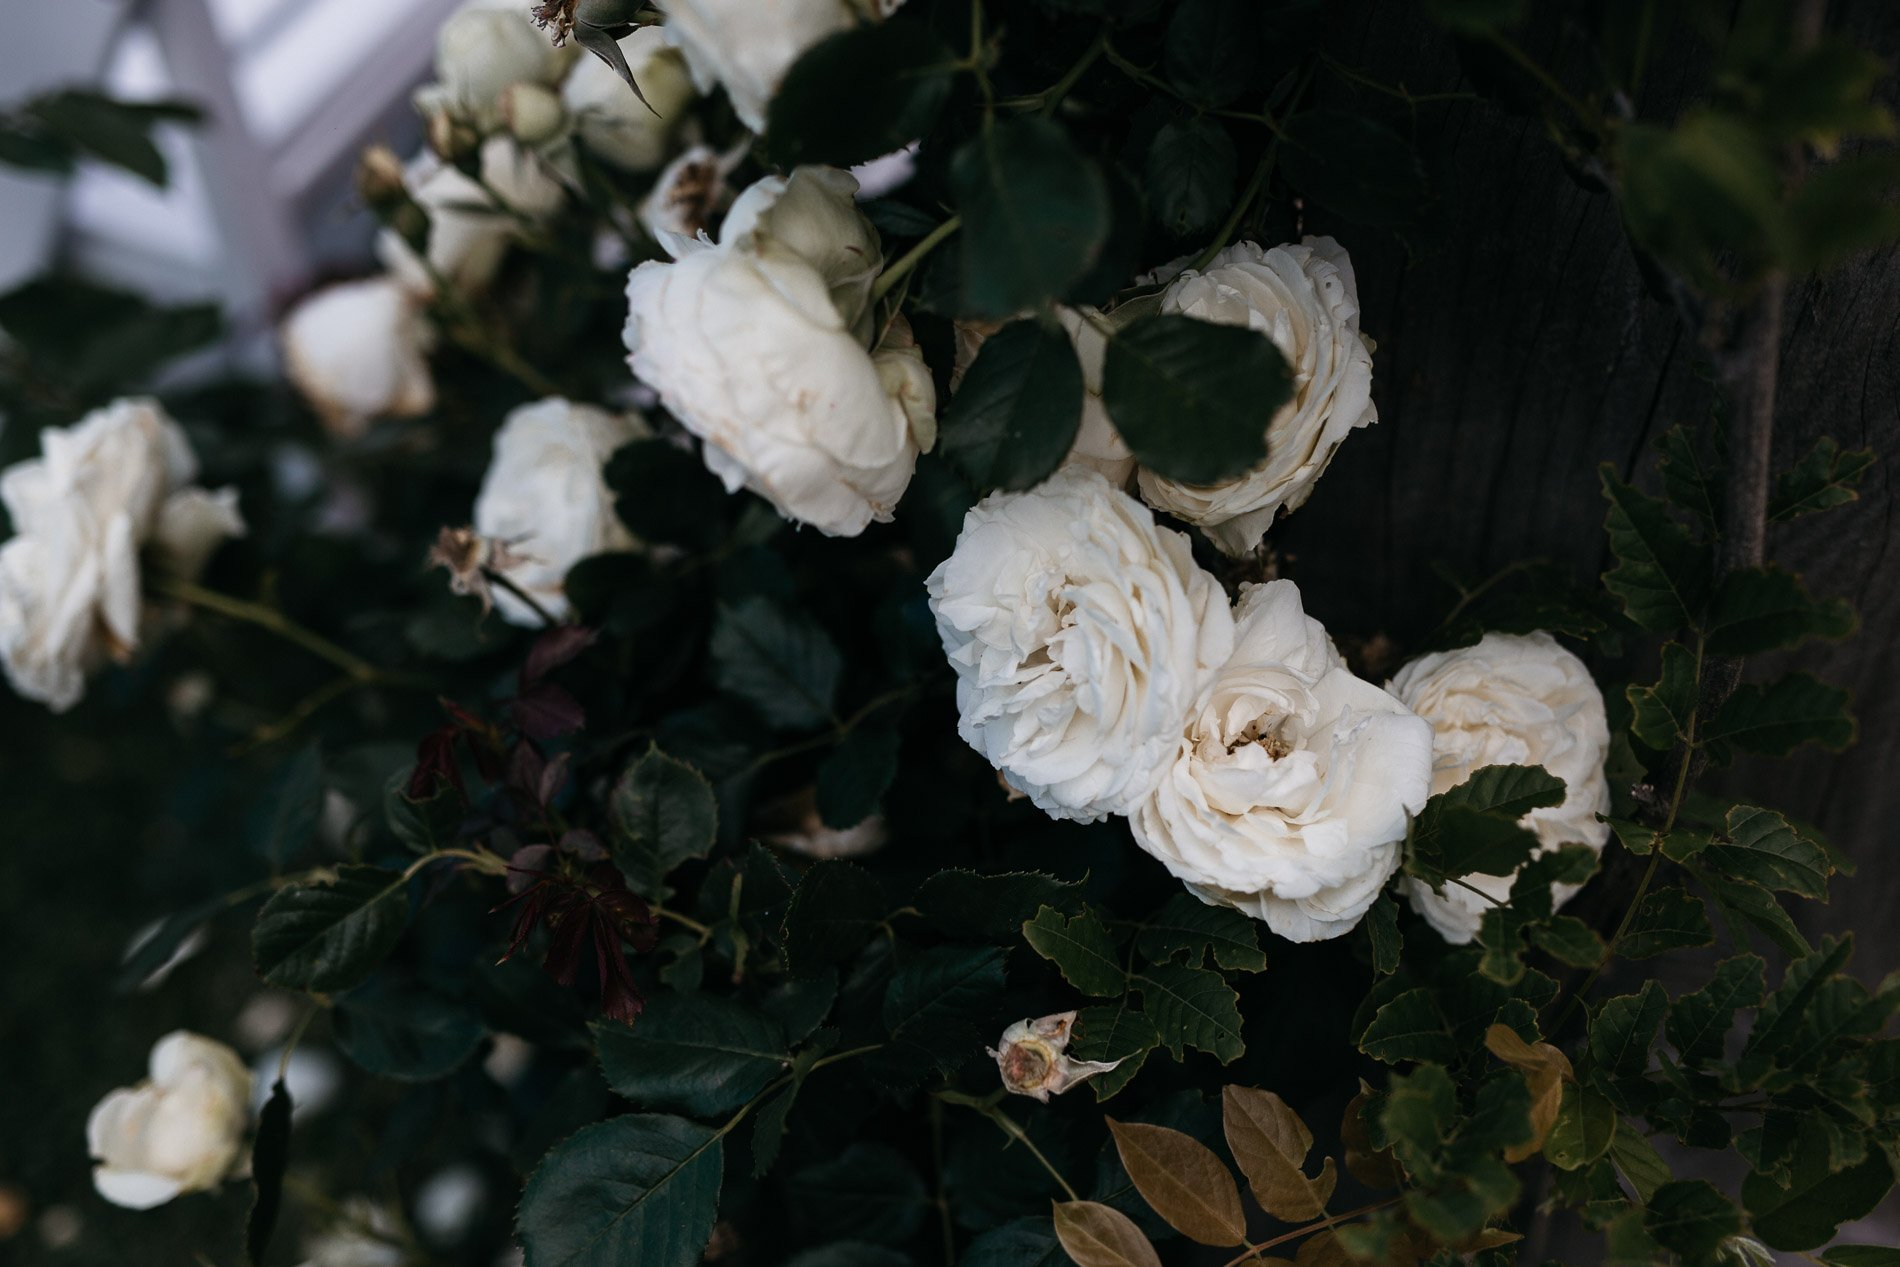 Fern and stone wedding photography flowers